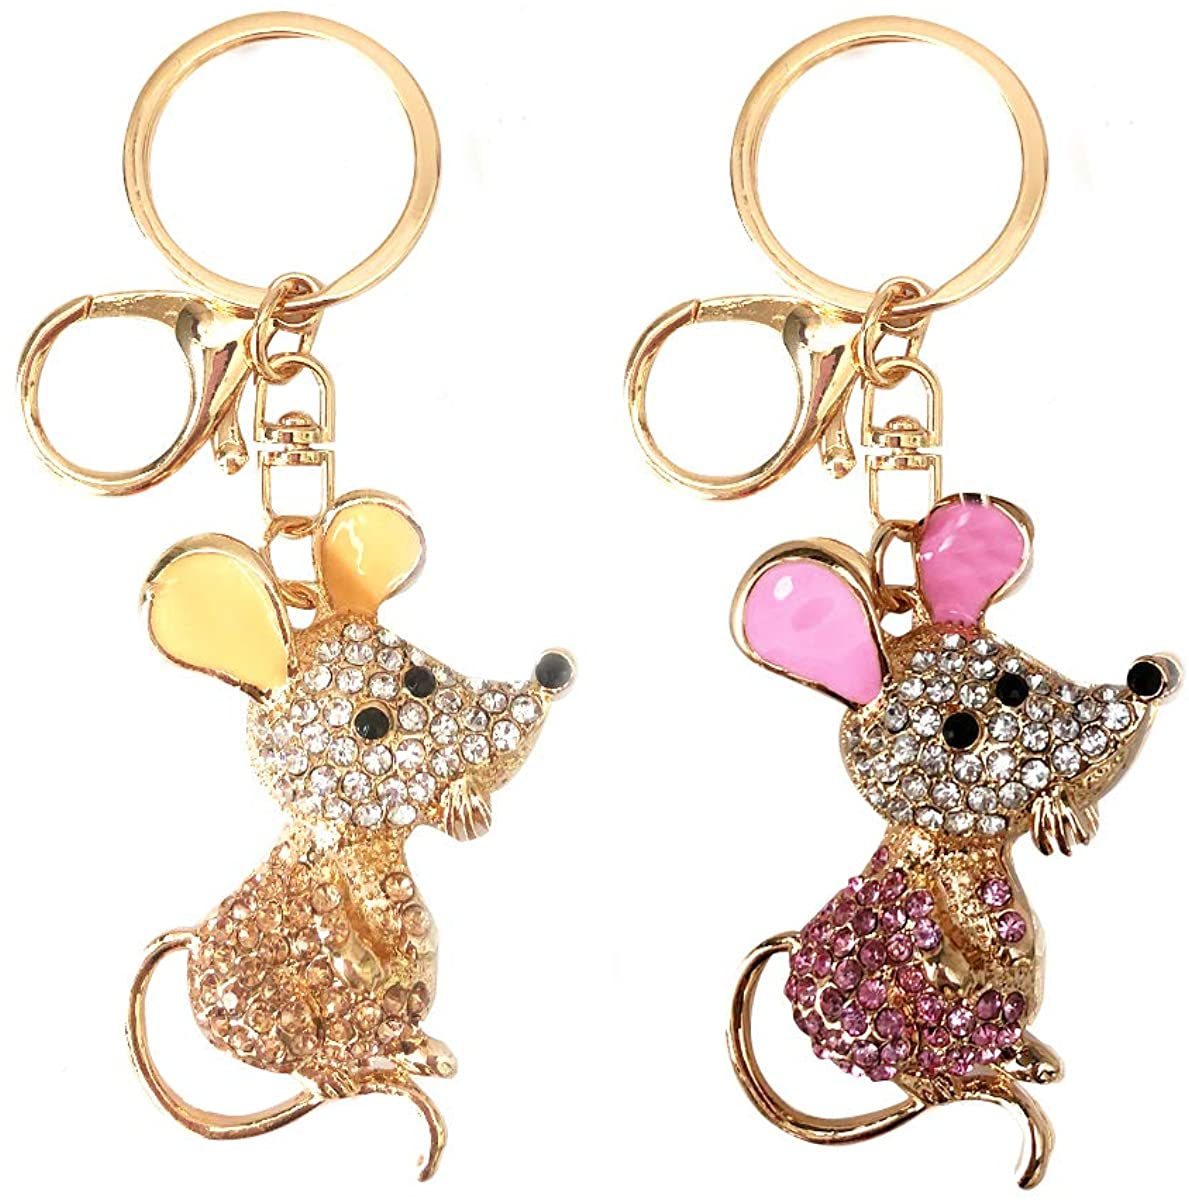 Pack of 12 Mouse Charm Rhinestone Key-chain Accessory for Bags, Handbag, Purse, Car, Keyrings